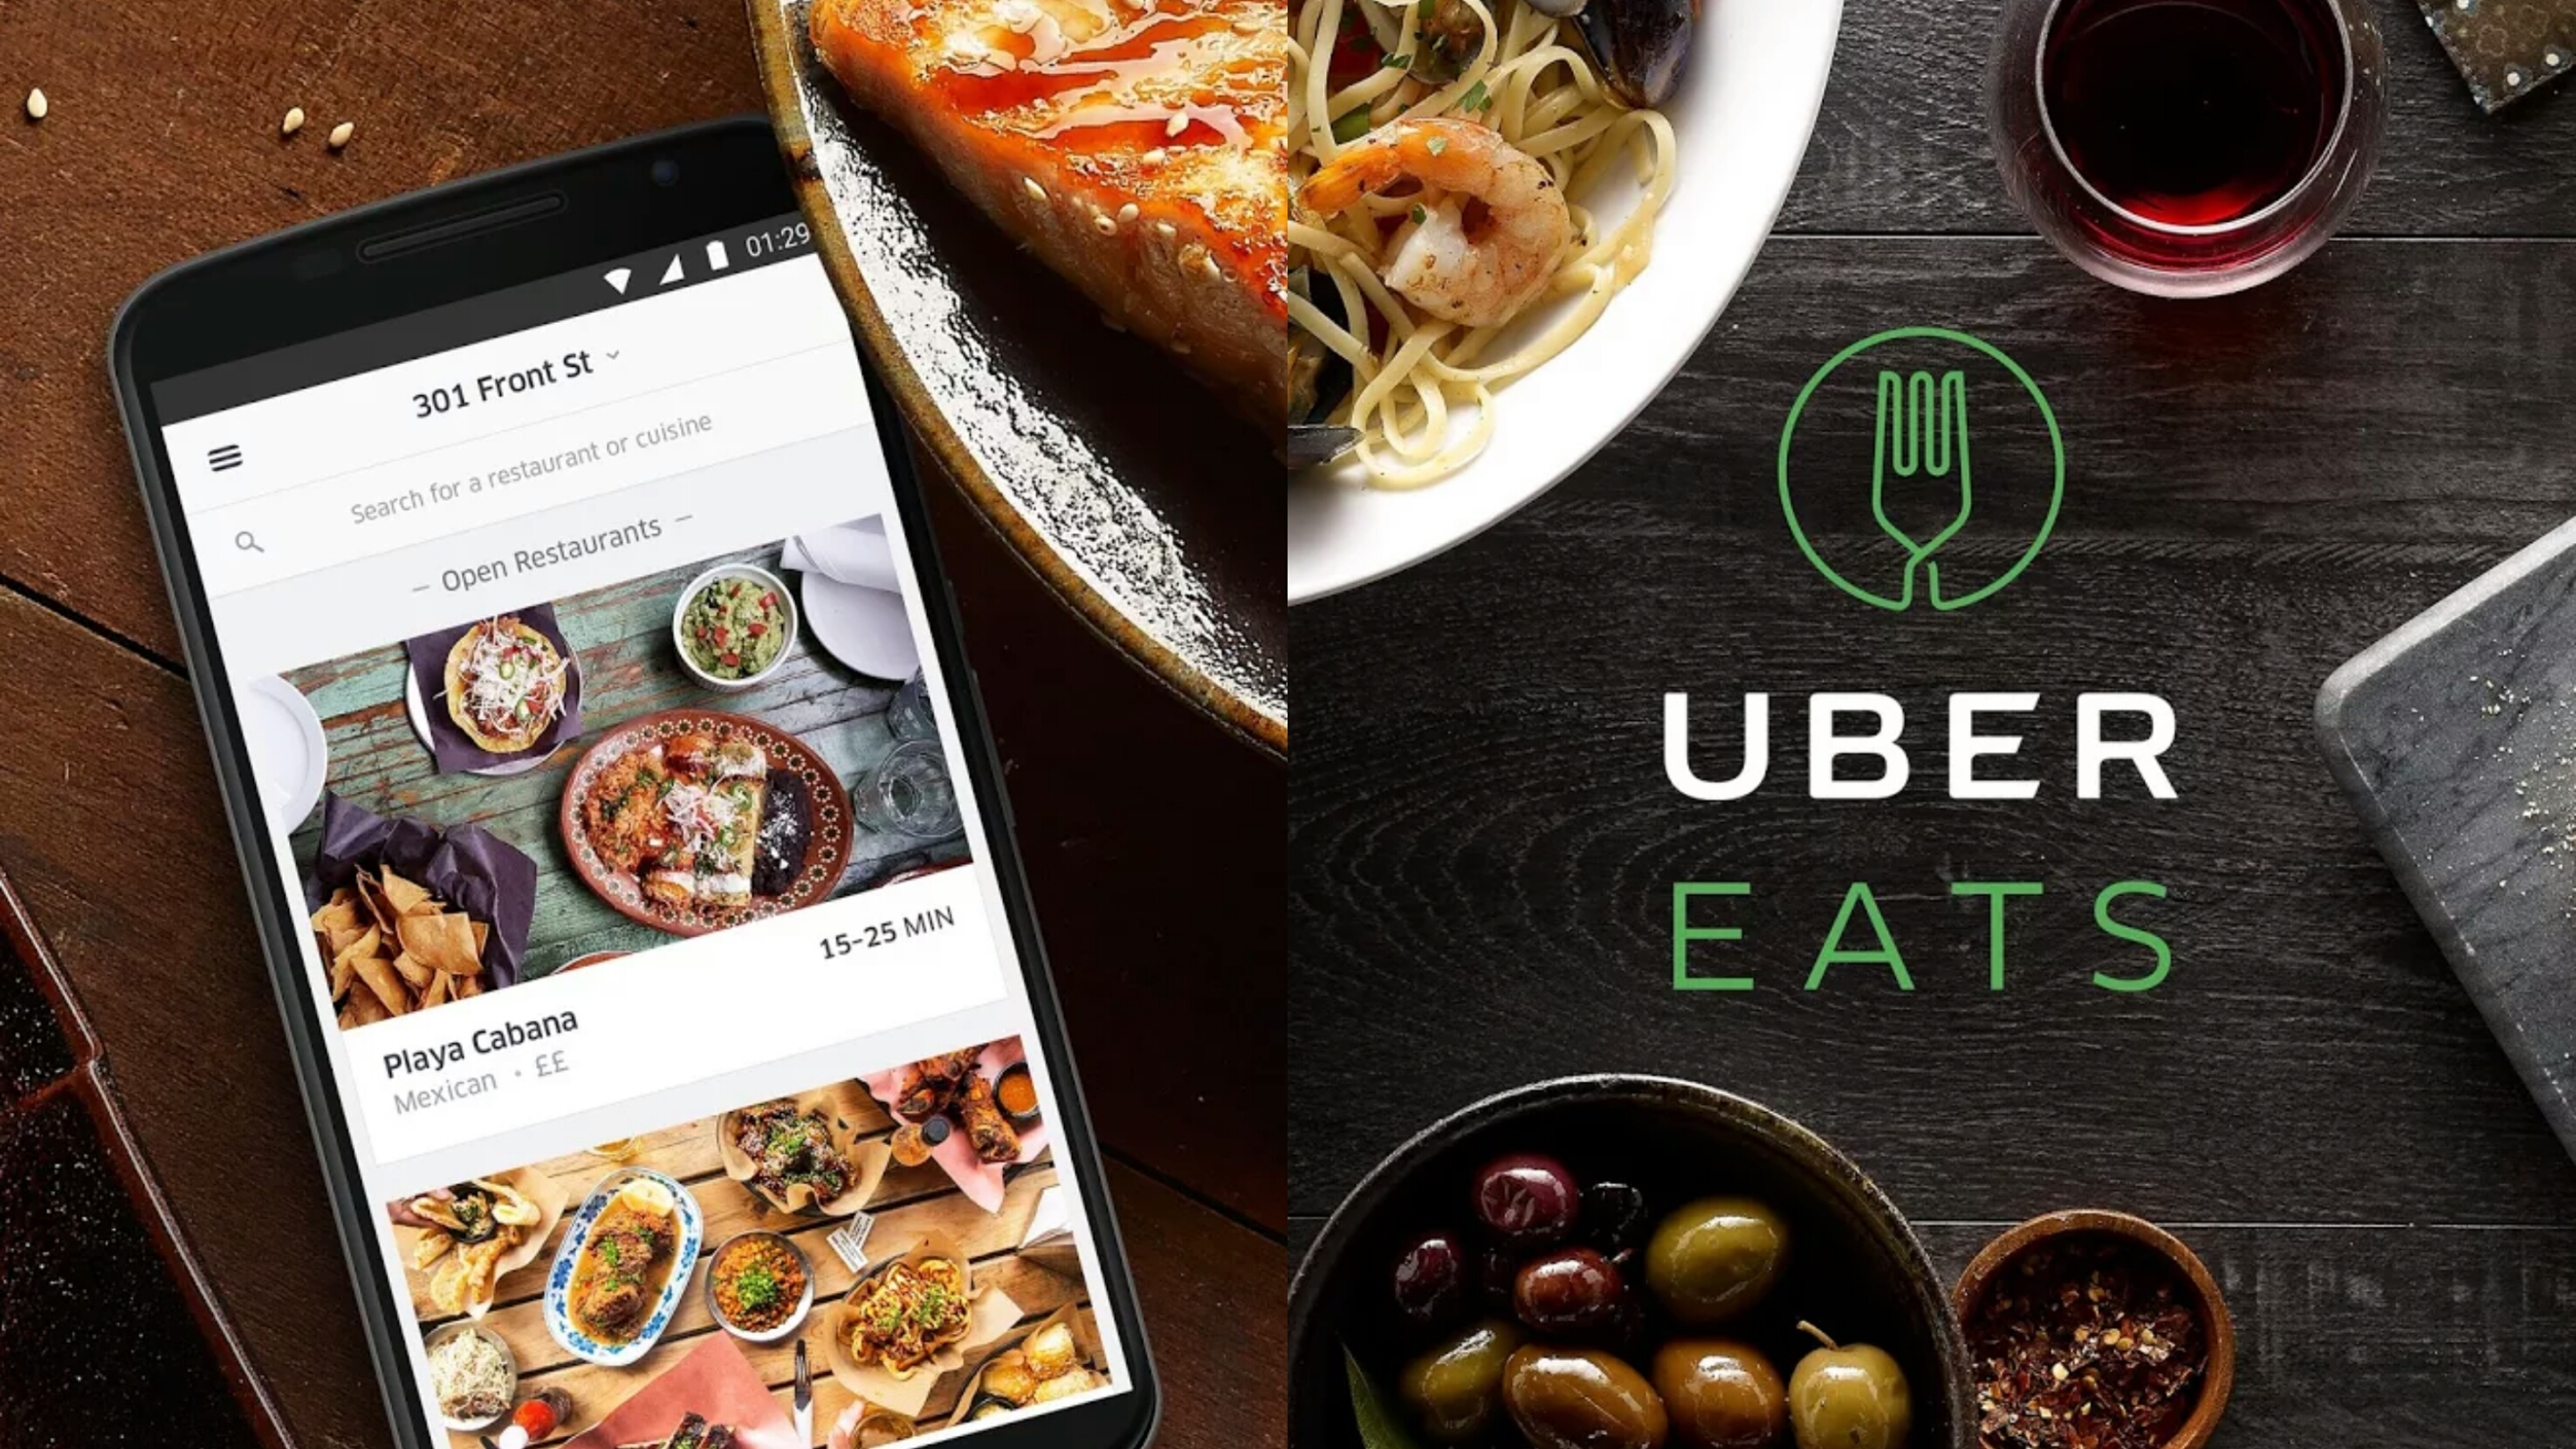 Uber Eats Promo Code Today - Get 50% OFF on 2 Orders